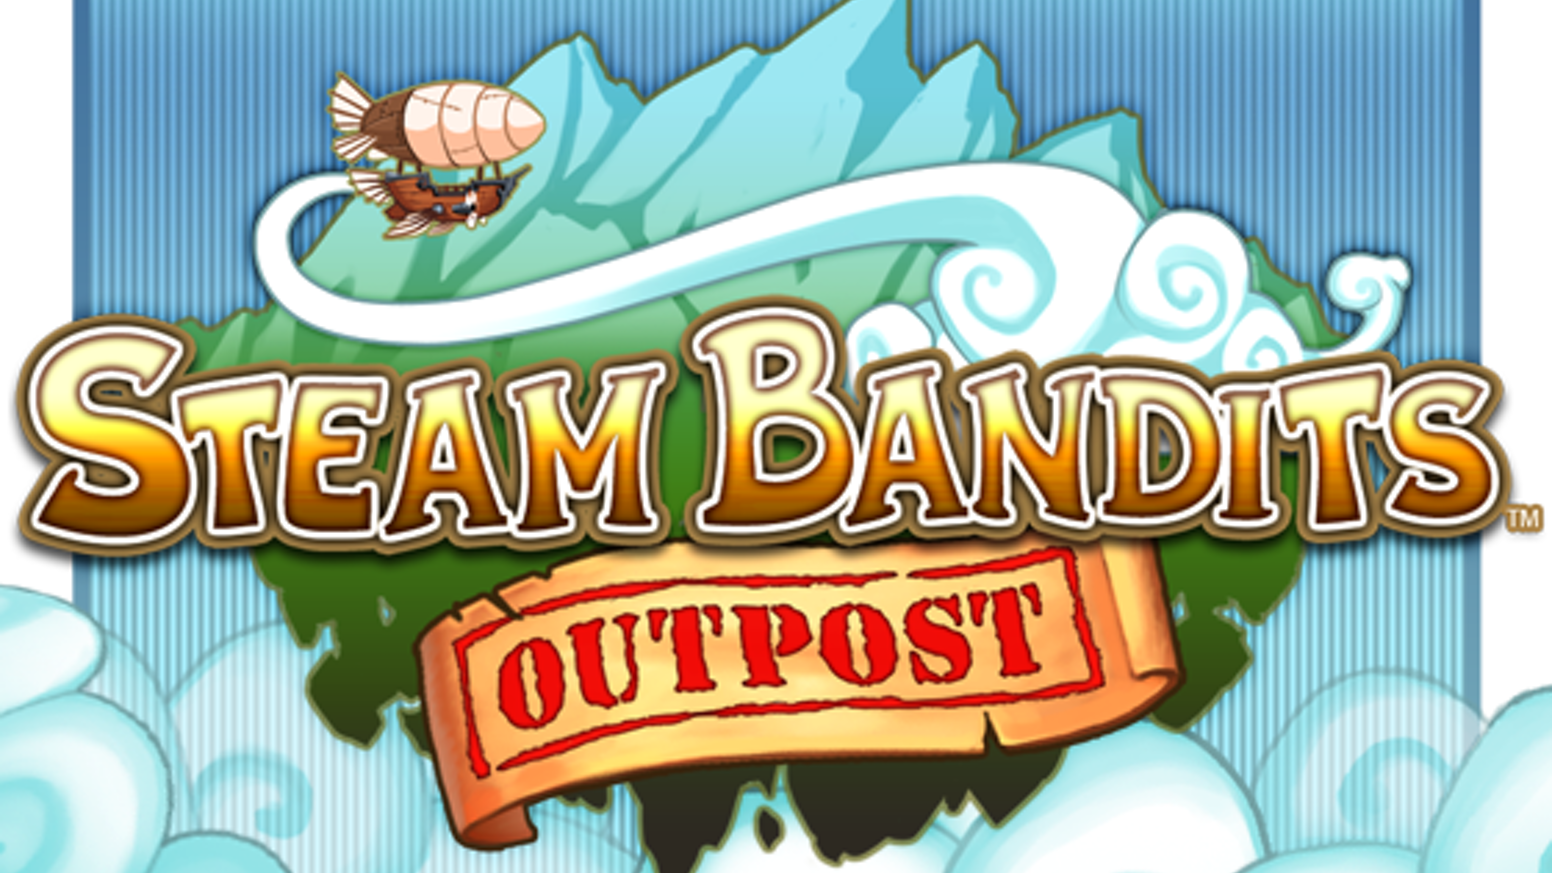 Steam Bandits: Outpost by iocaine studios » Join Team